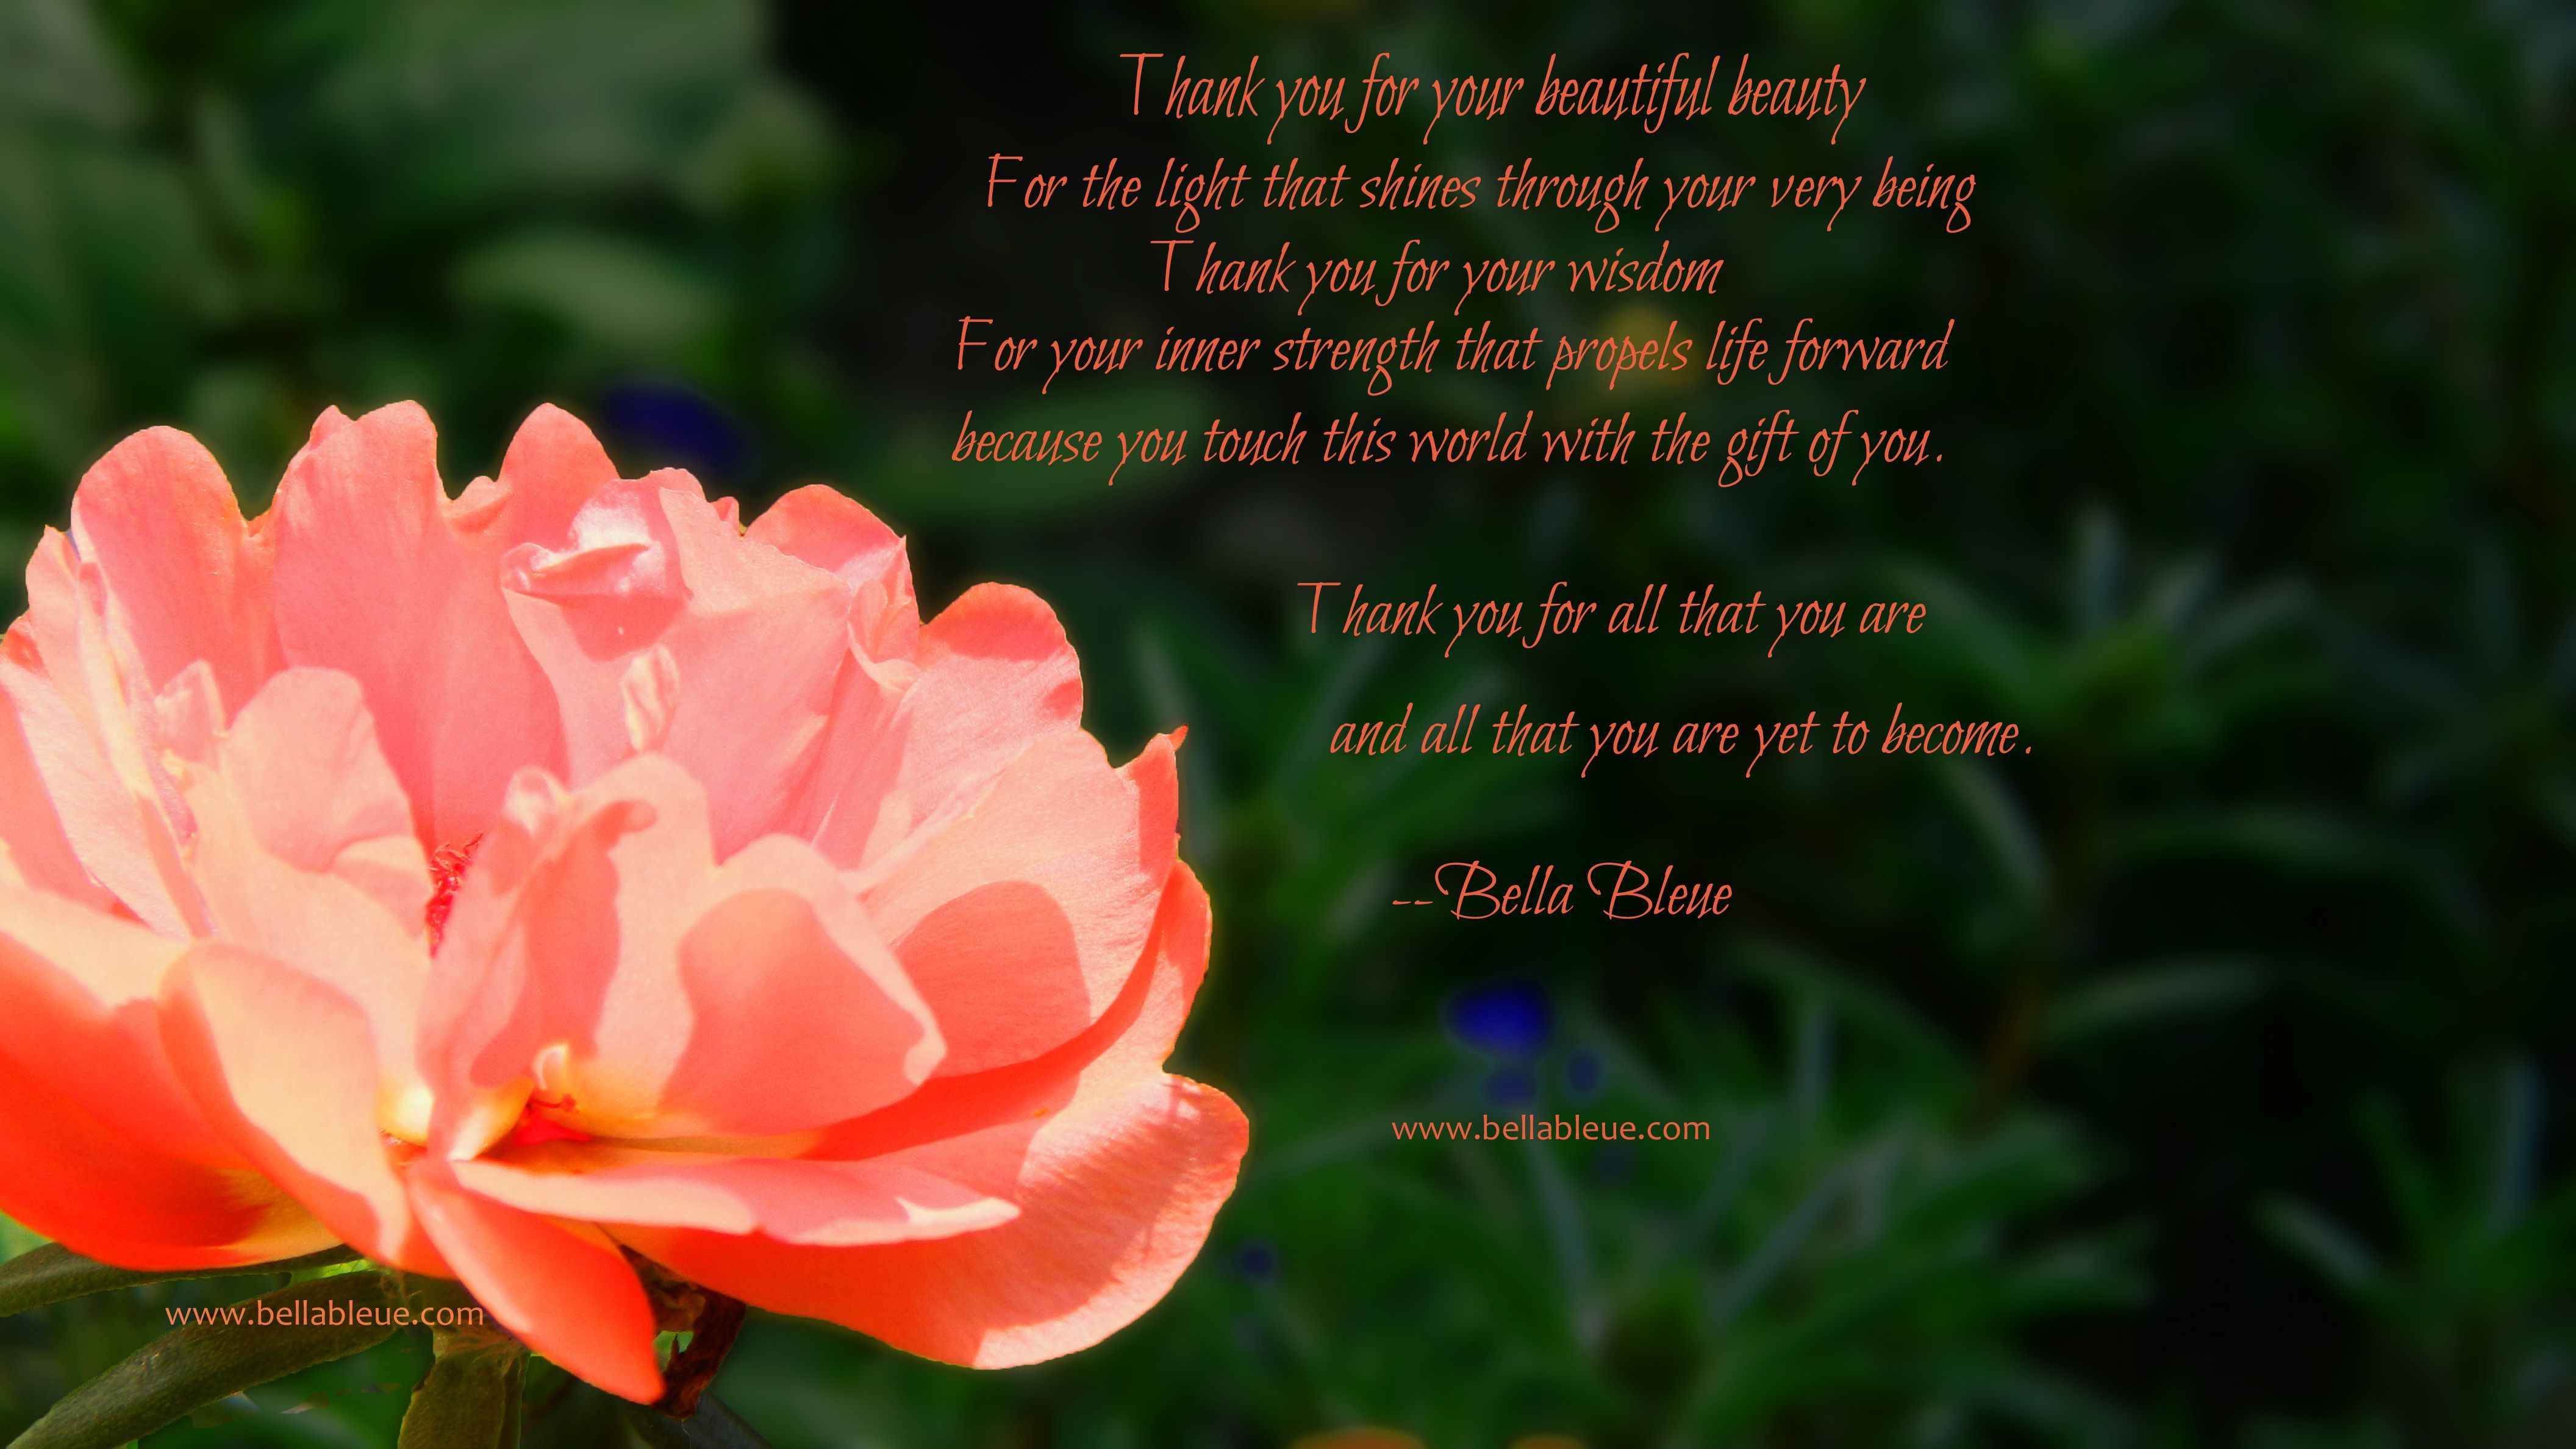 Poems of Encouragement and Strength | Poetry | Bella Bleue Healing™